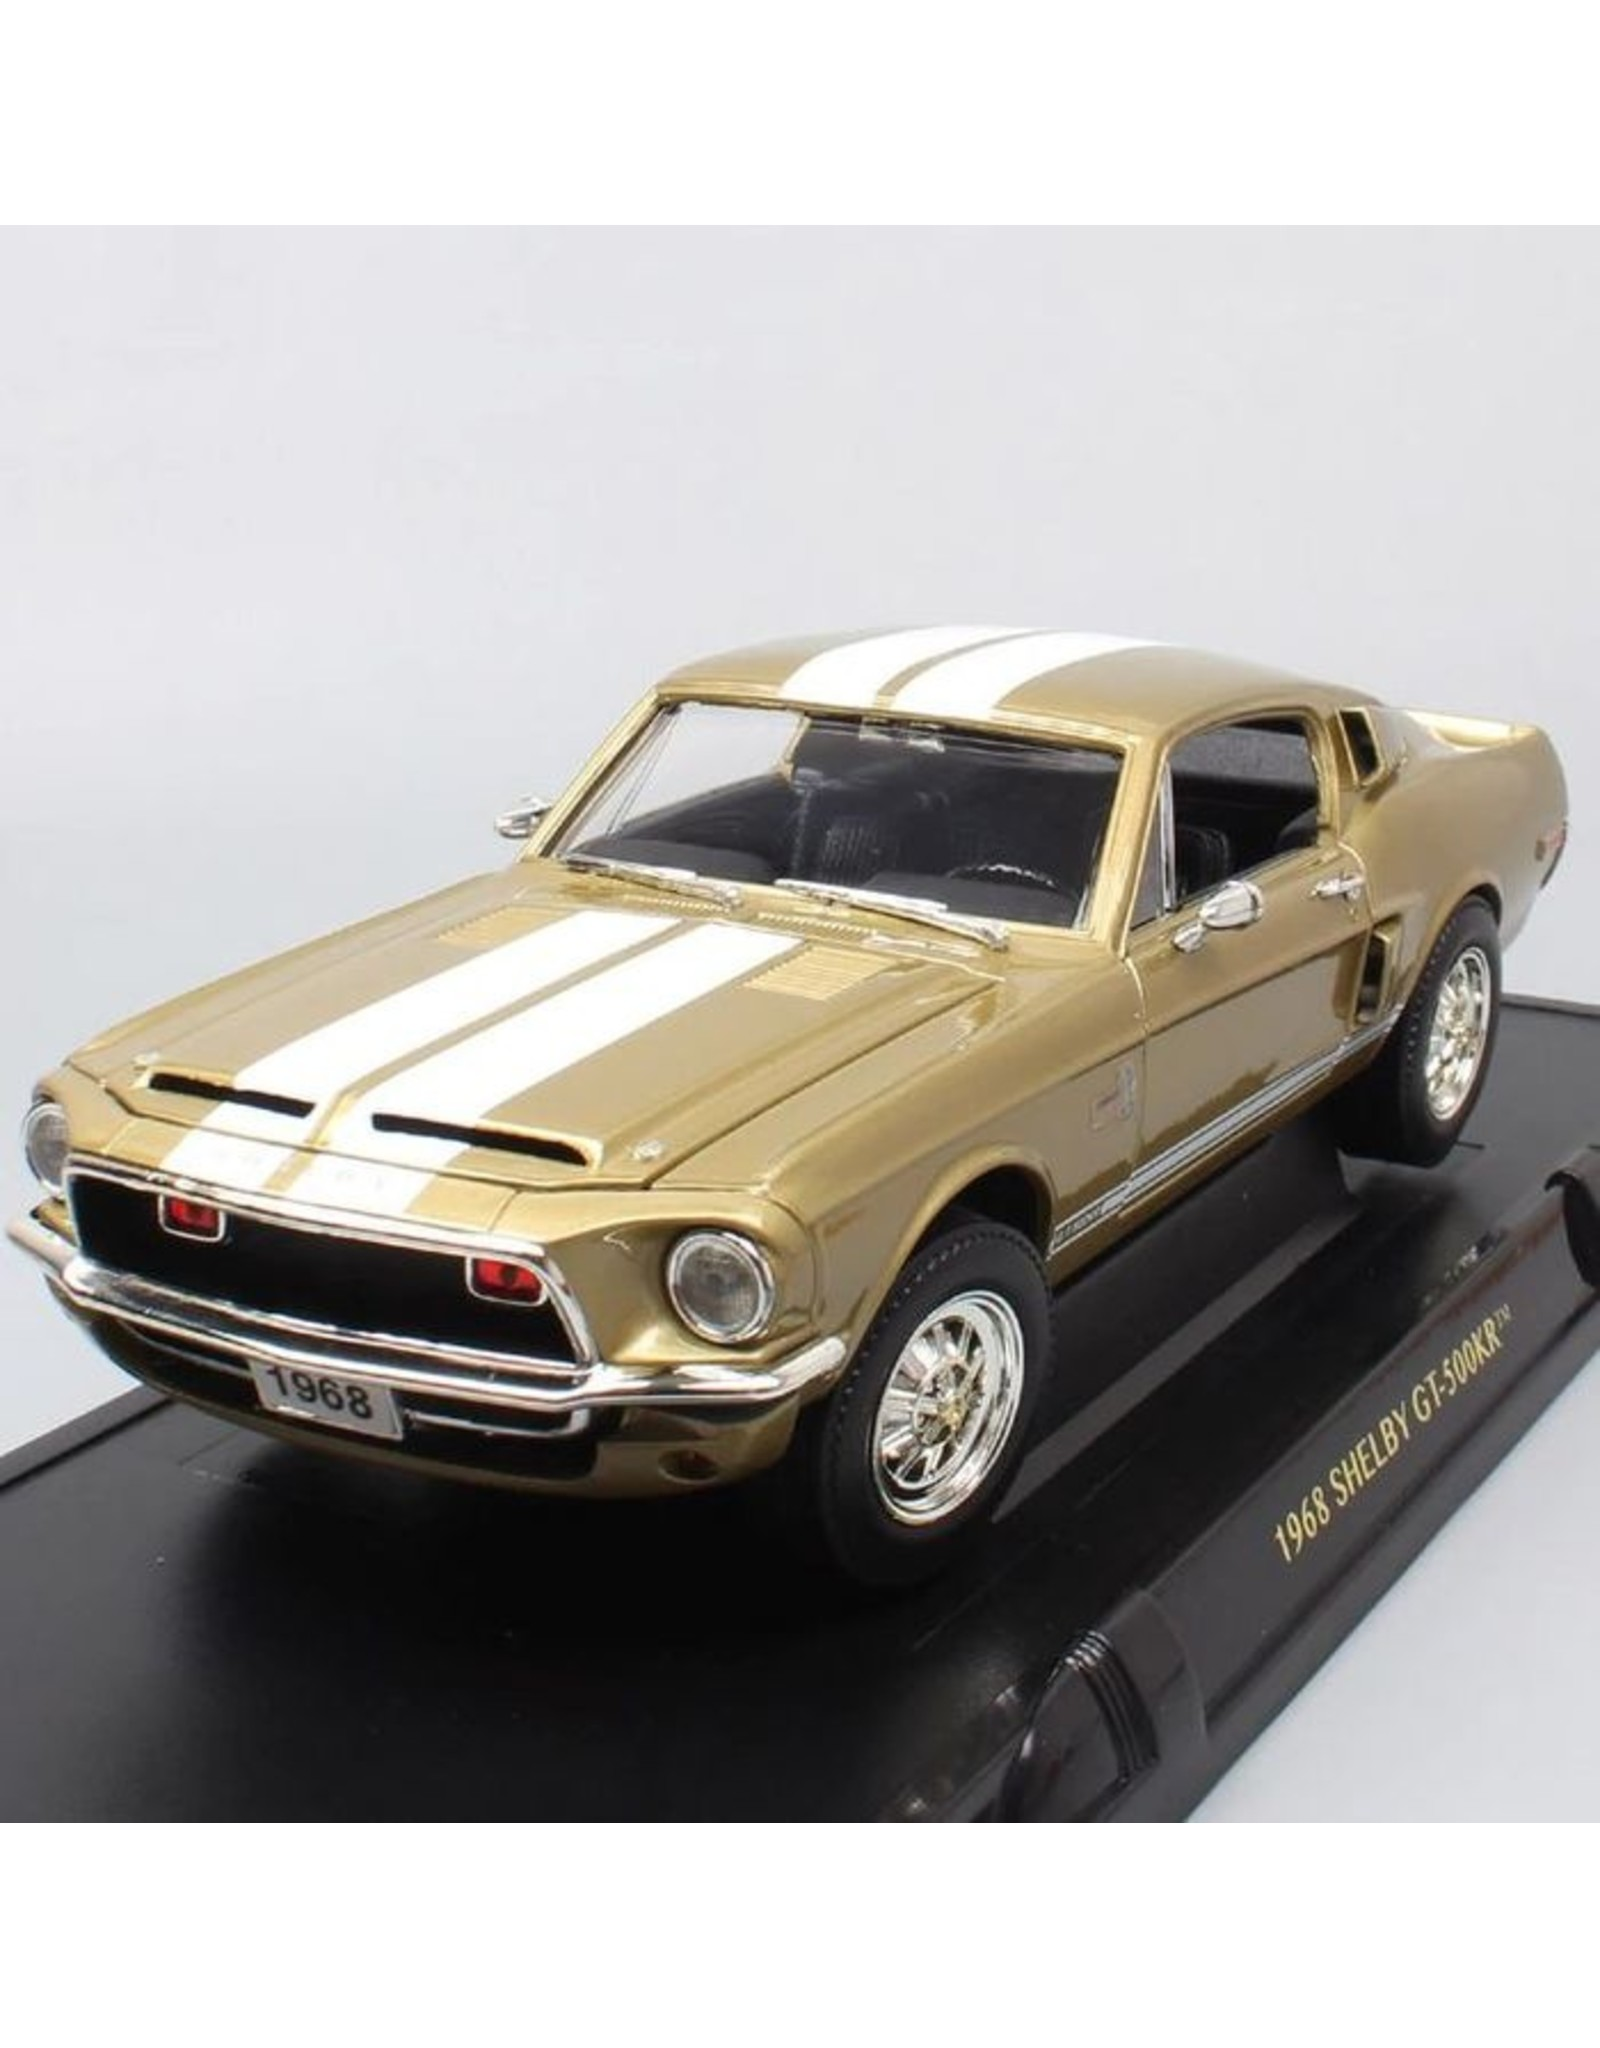 Shelby Shelby GT-500KR 1968 - 1:18 - Road Signature